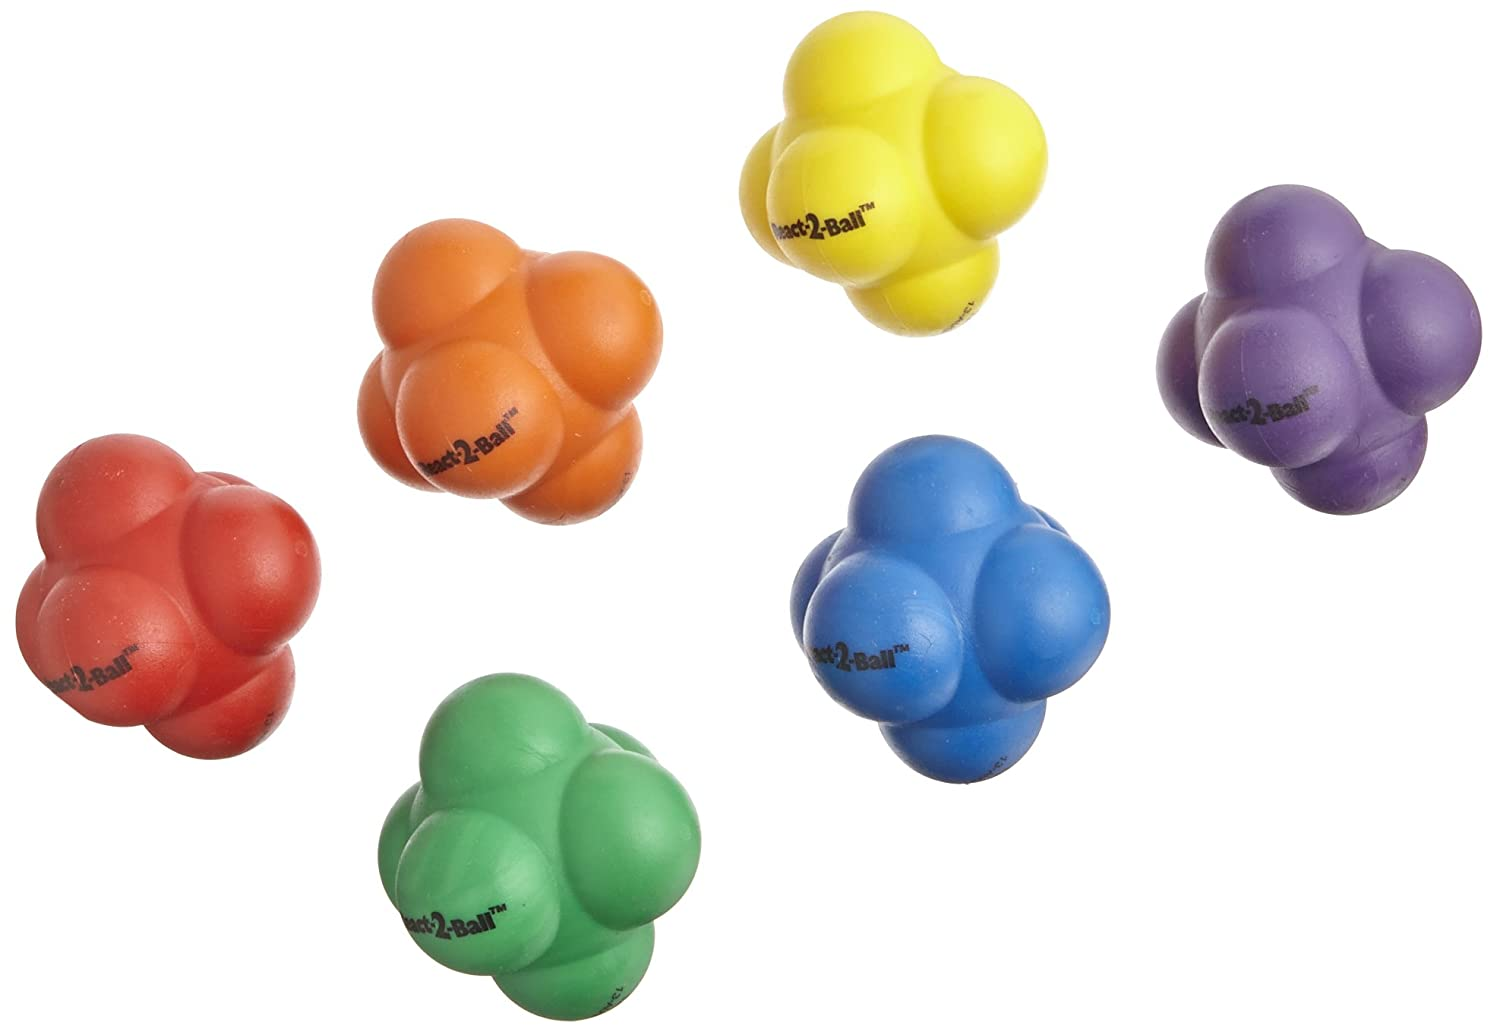 Sportime Rubber React-2-Ball with Erratic Bounce - Set of 6 - Multiple Colors